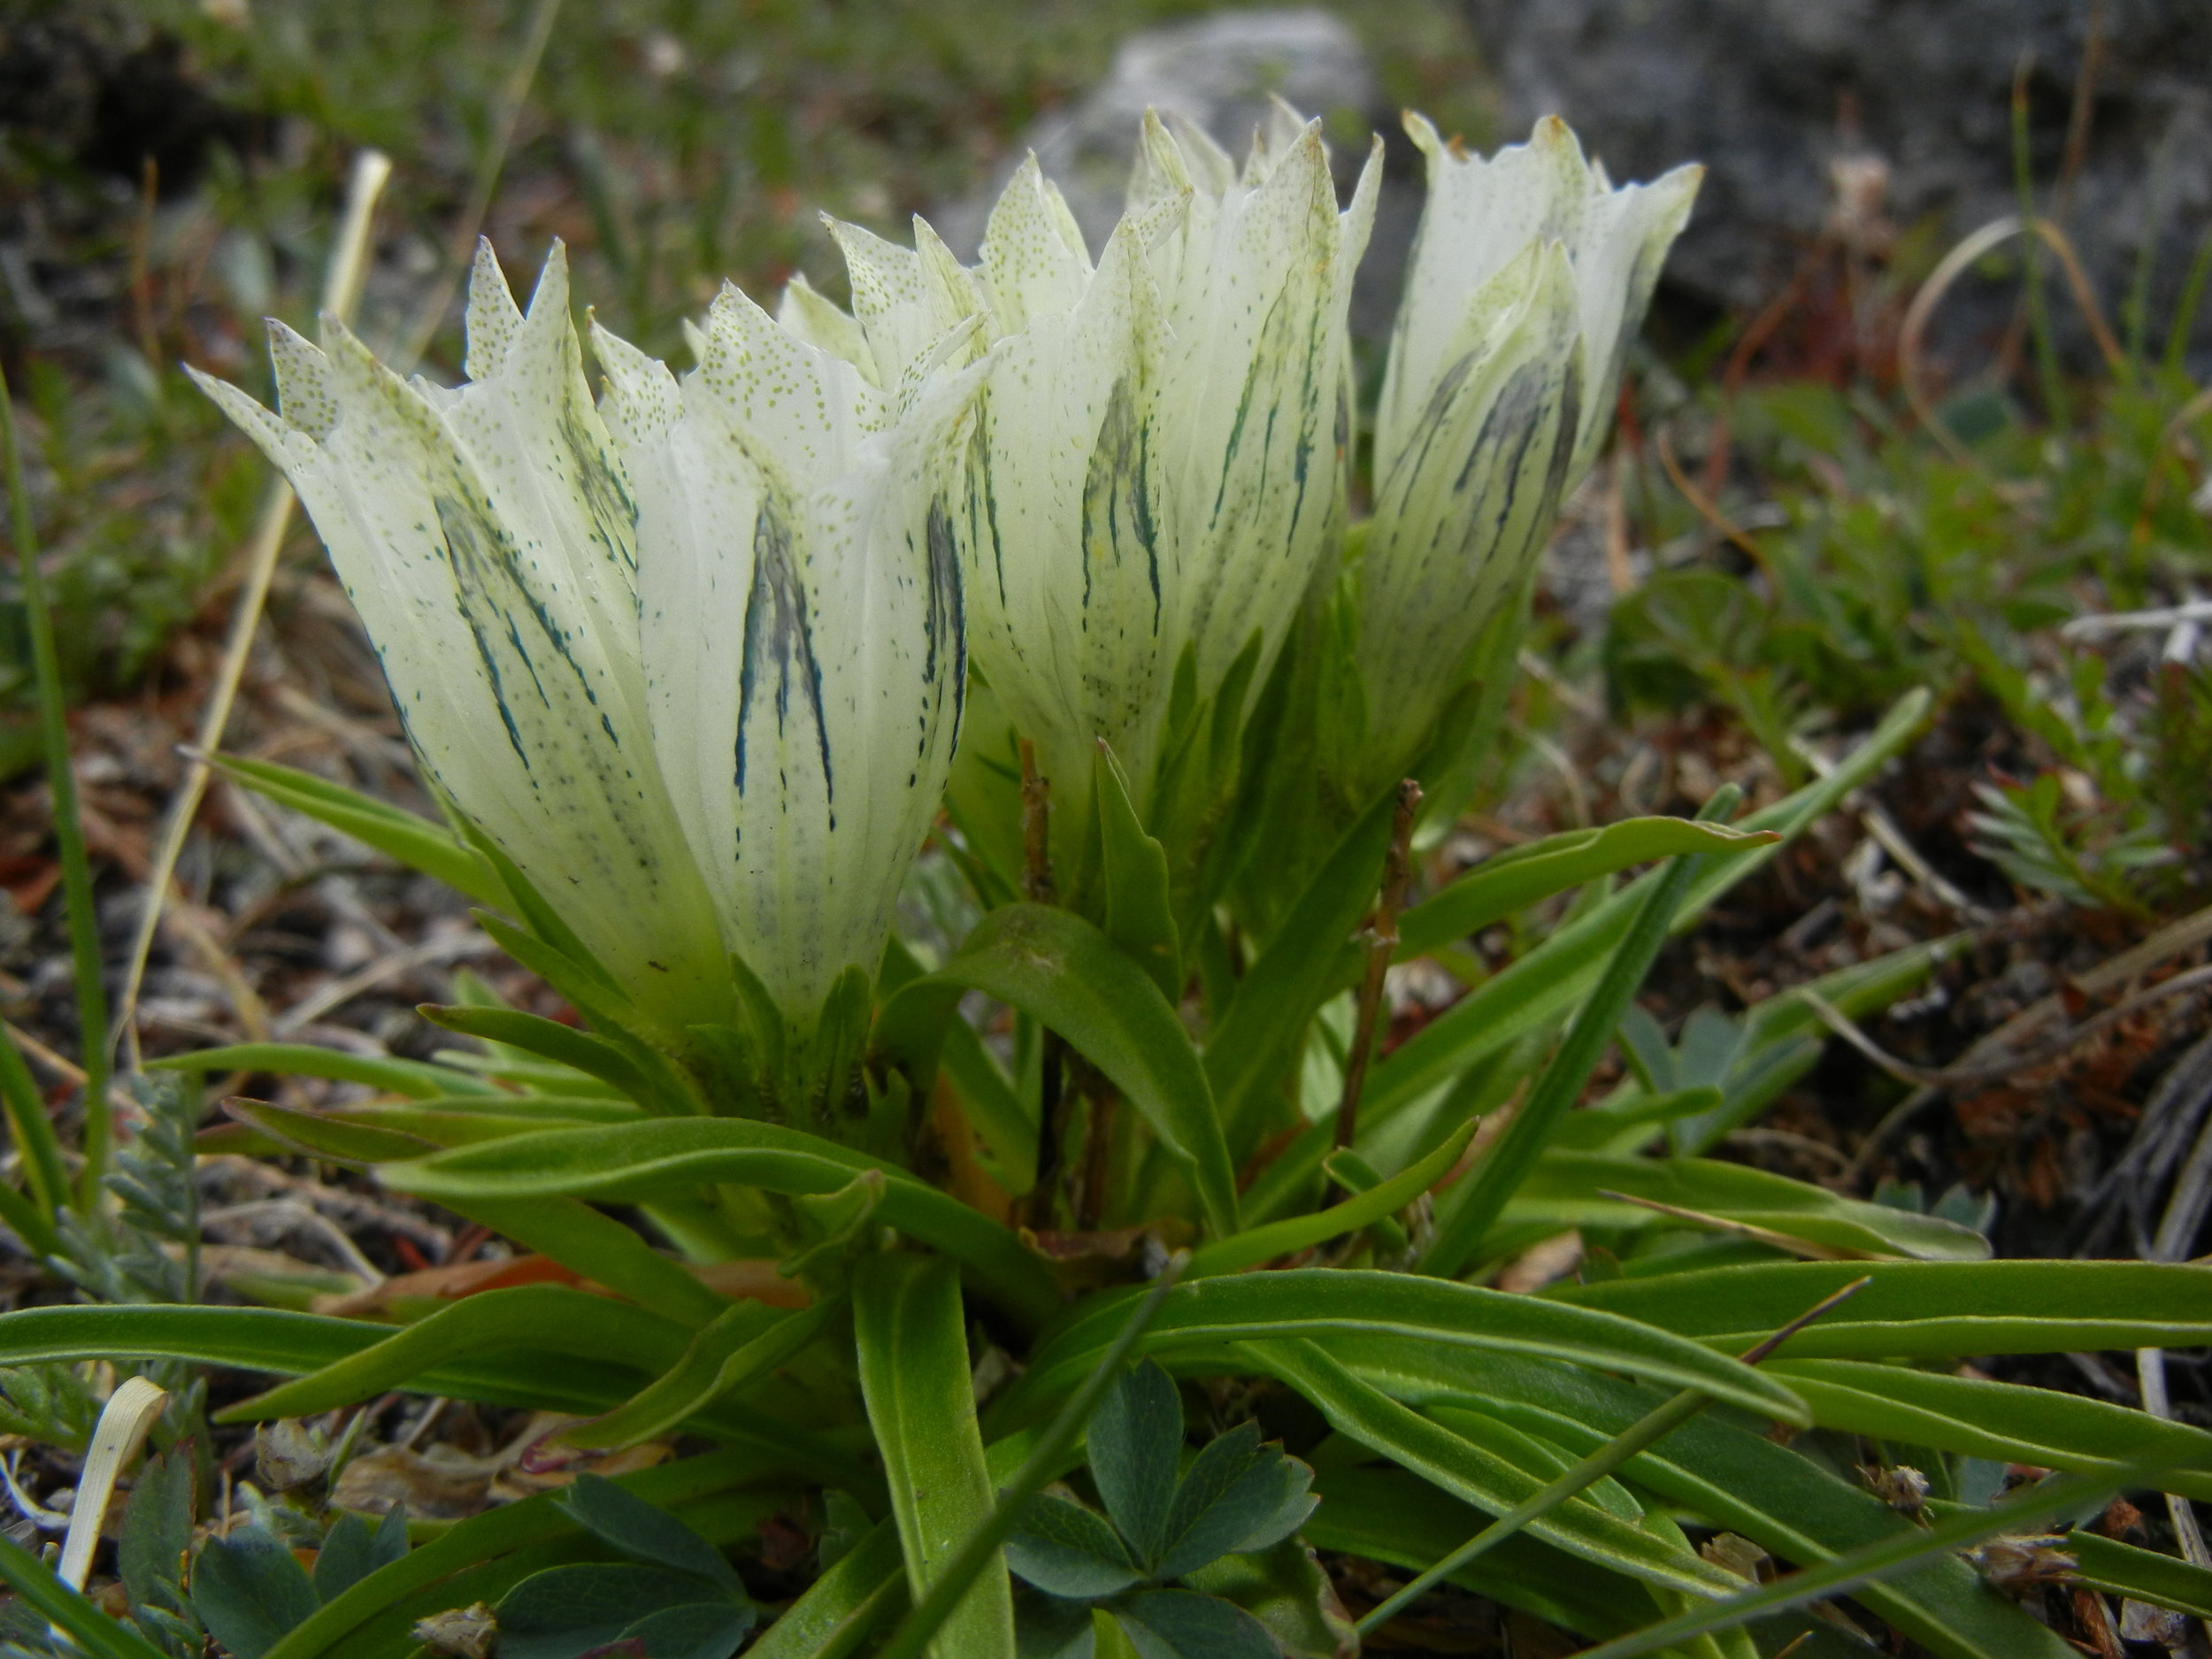 Native Arctic gentian, Gentiana algida, is one of the latest blooming wildflowers on the Pass